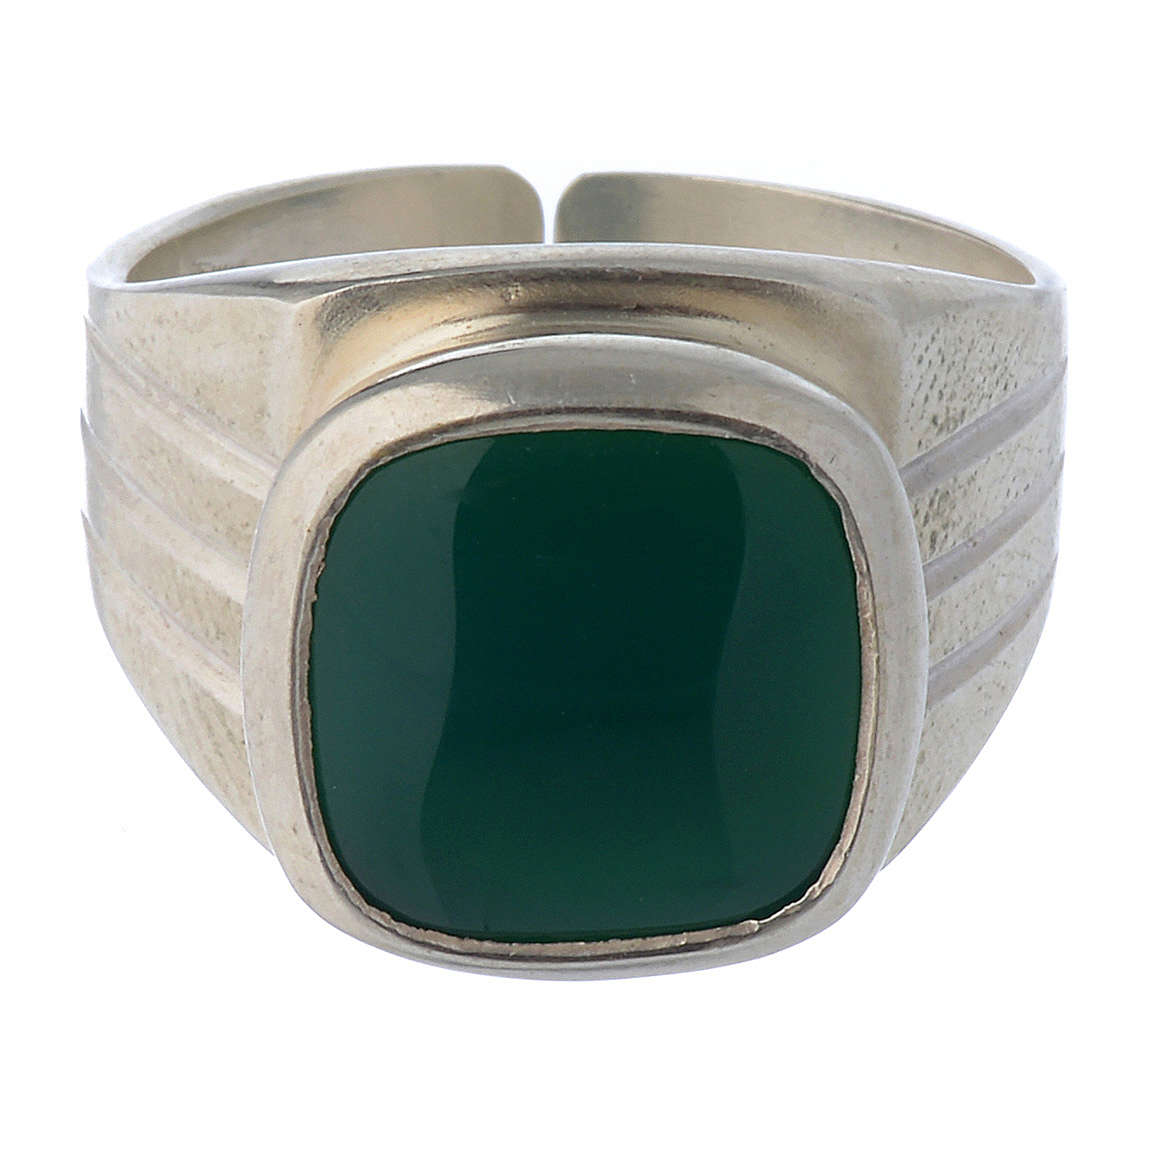 Bishop ring in 800 silver and green agate 3